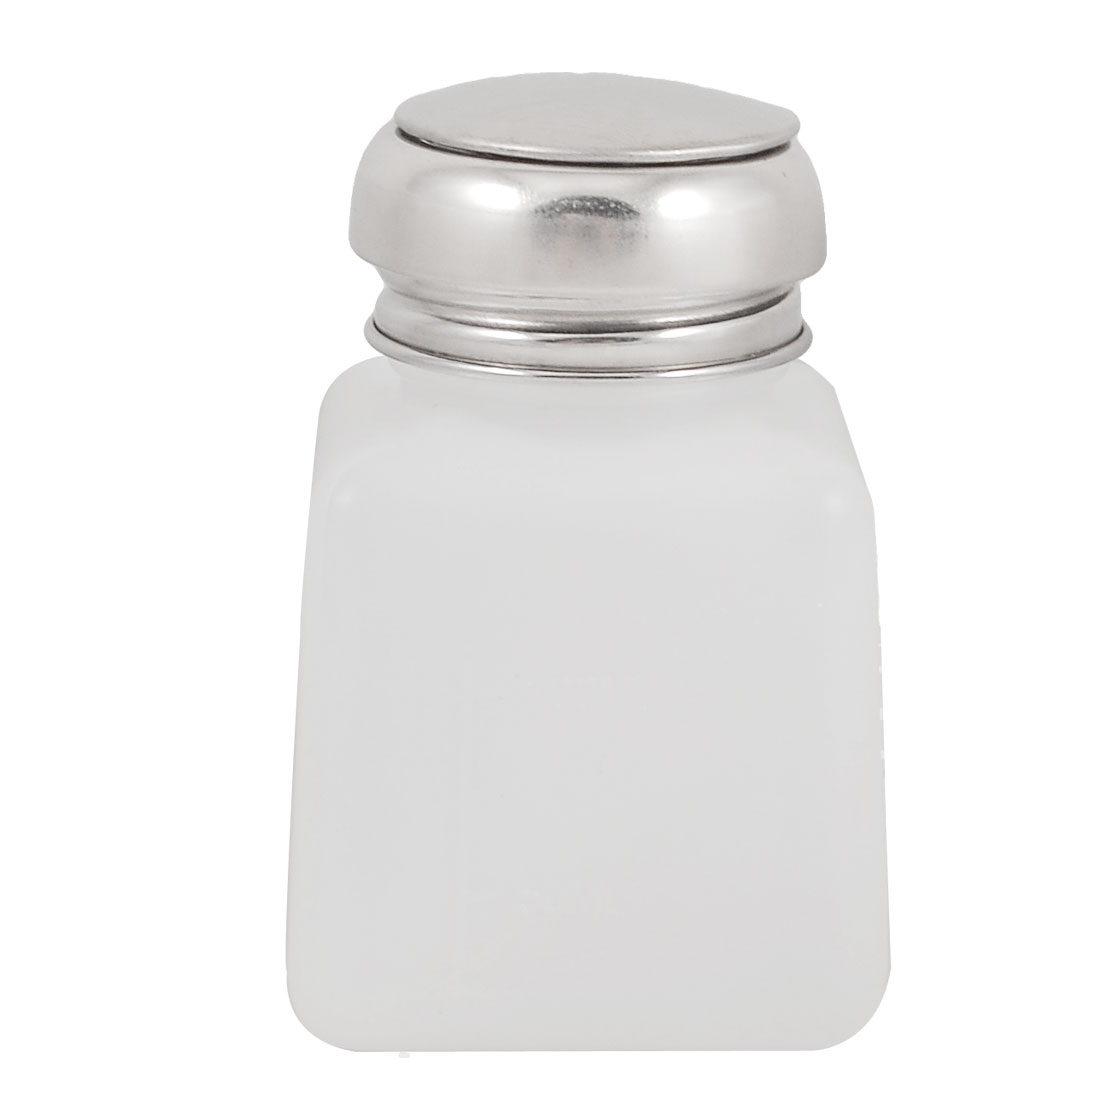 Metal Cap 100ml Plastic Liquid Container Alcohol Bottle White Silver Tone